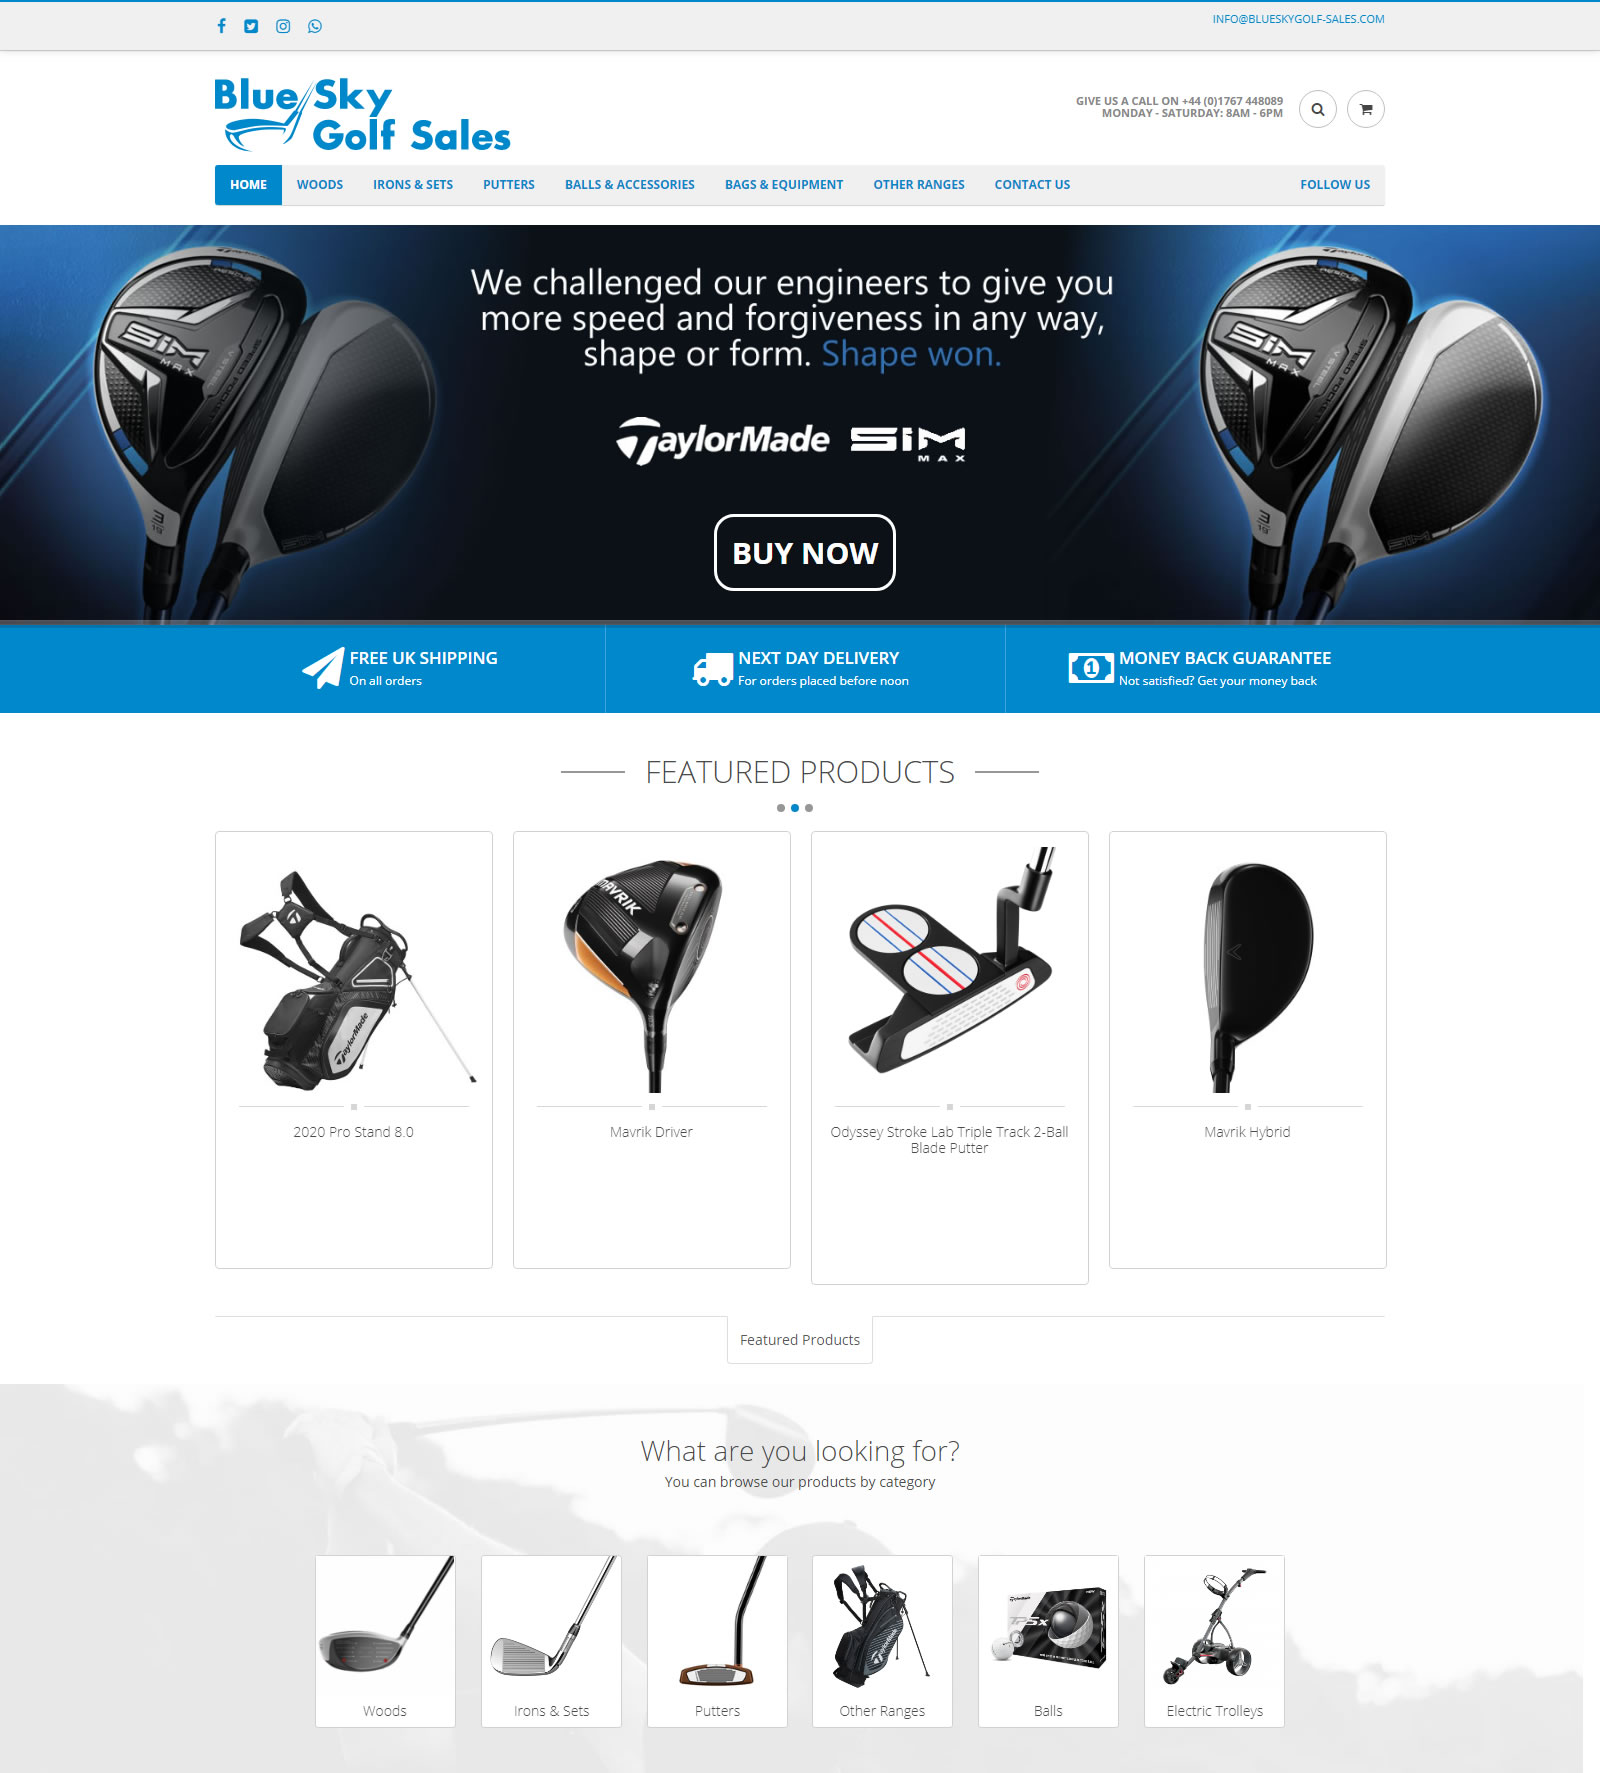 Blue Sky Golf Sales